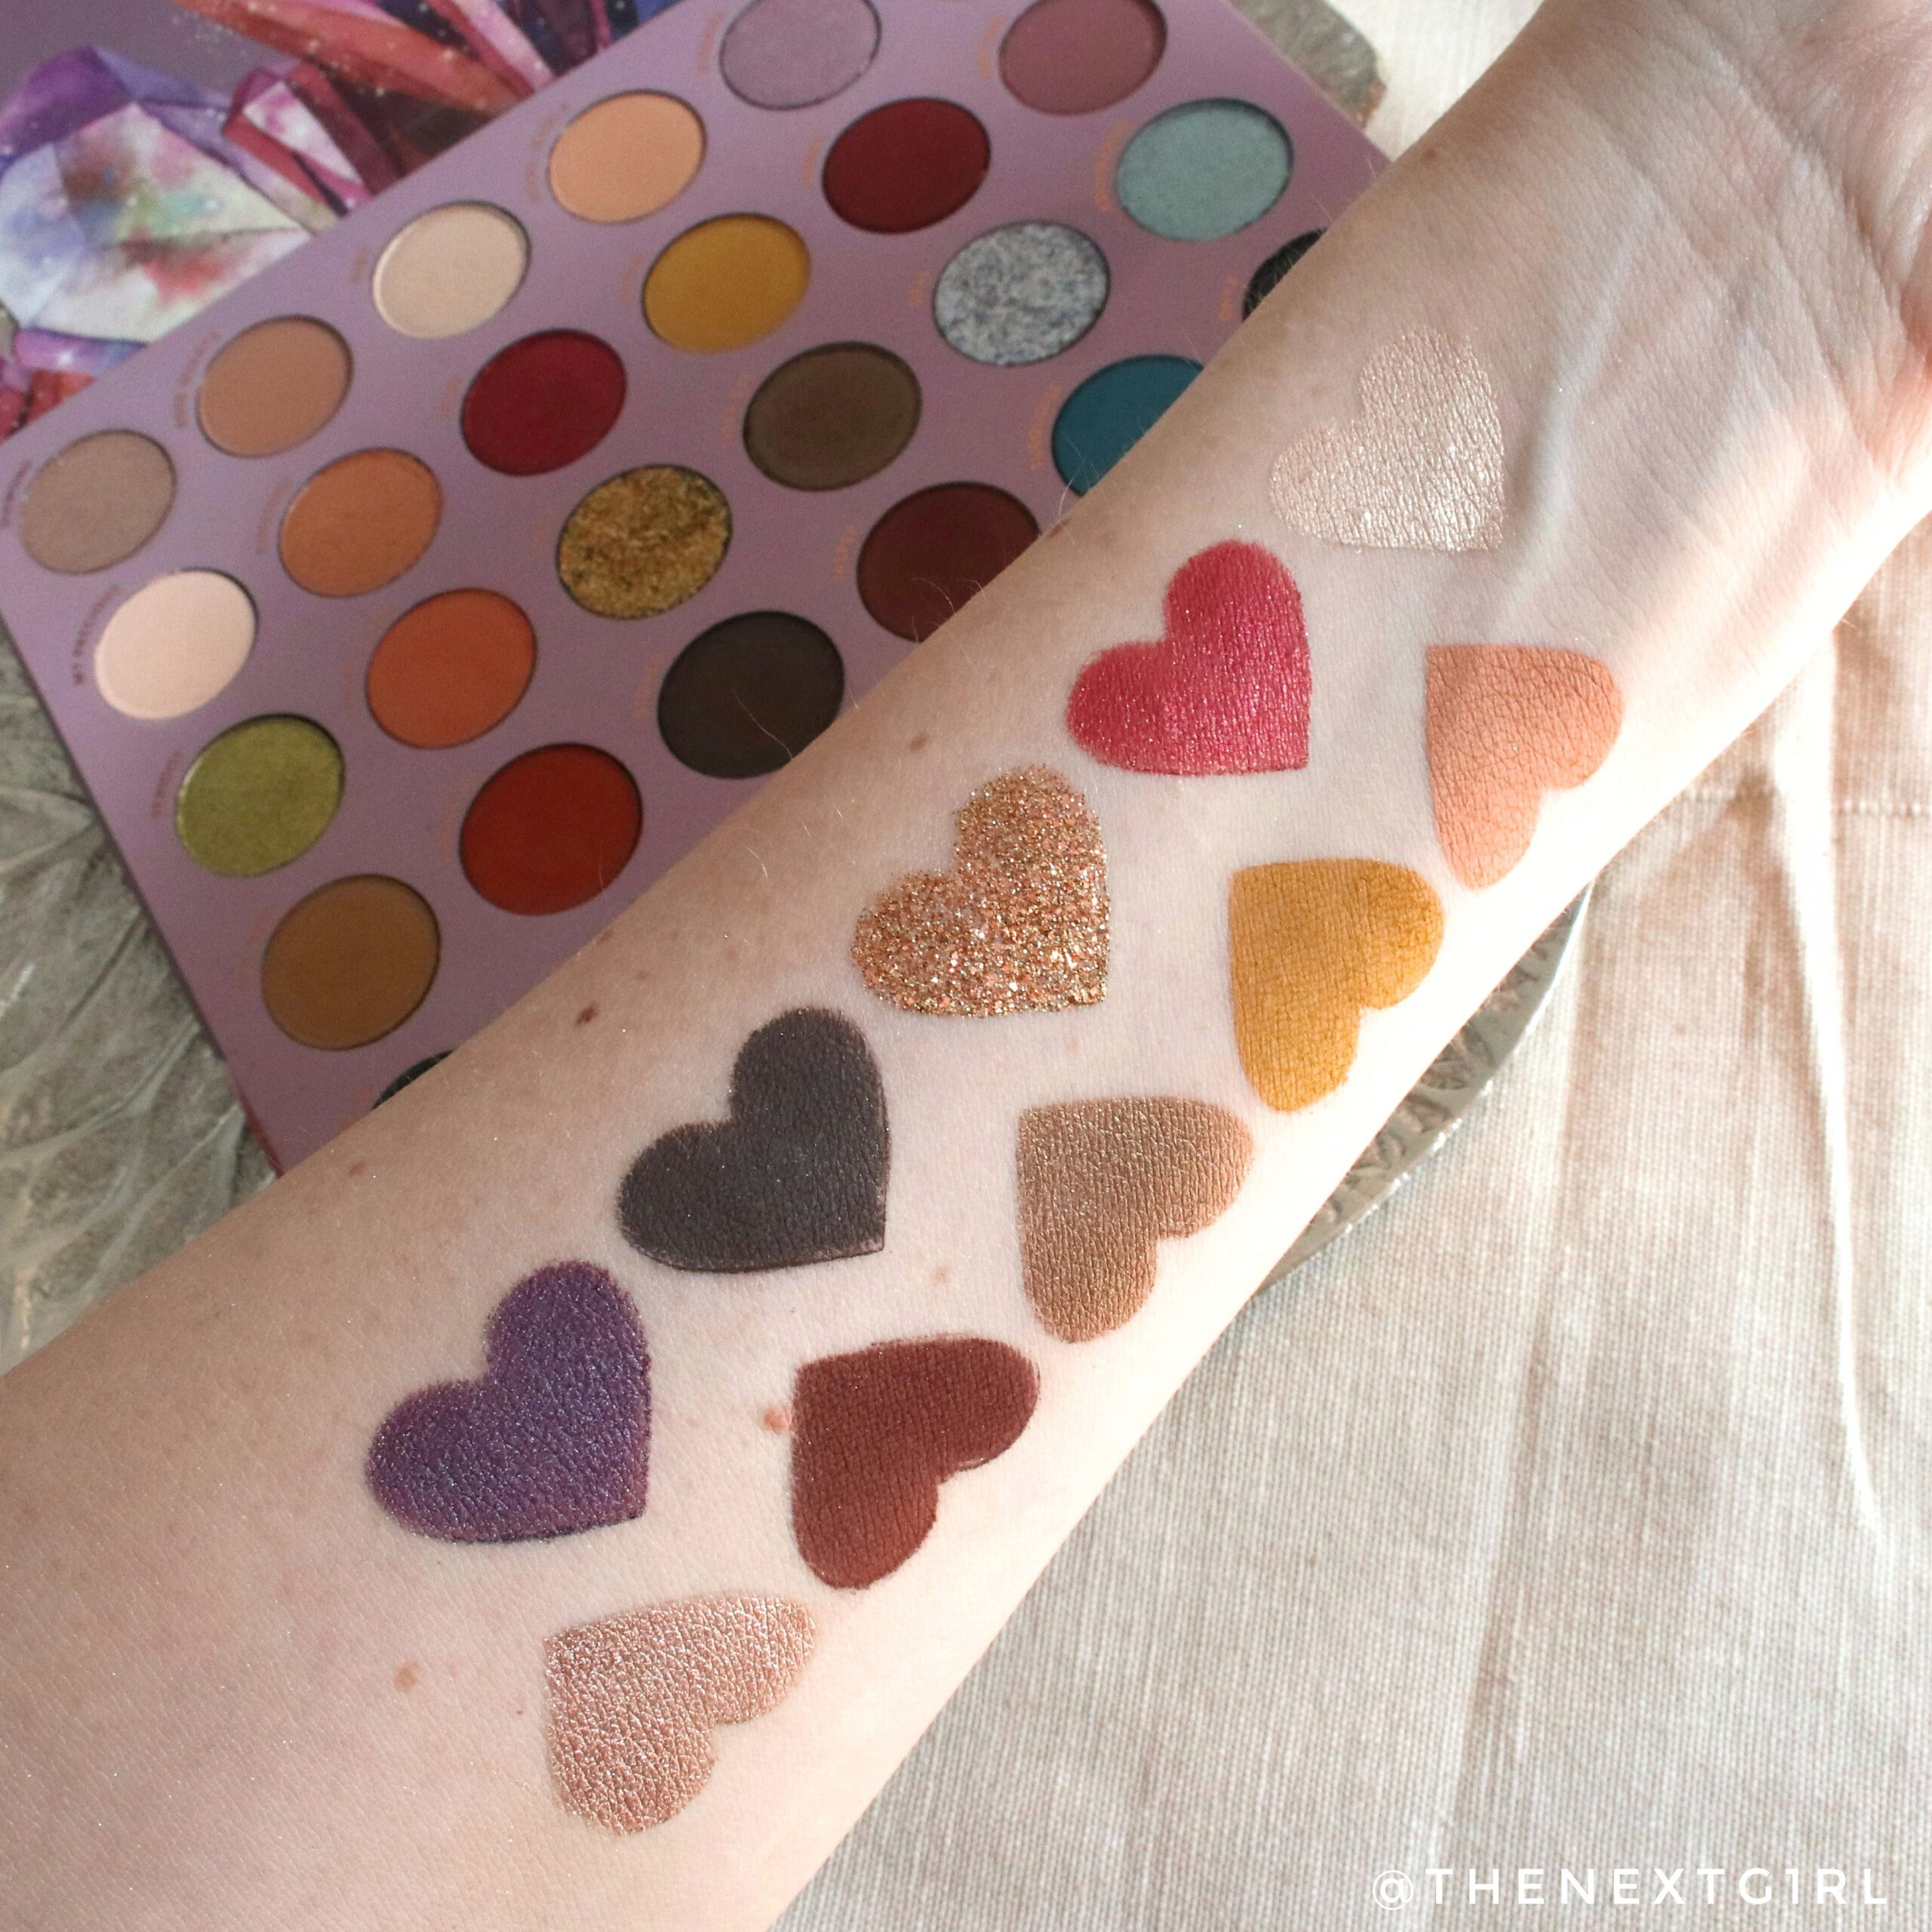 Swatches 3 Colourpop So Jaded palette